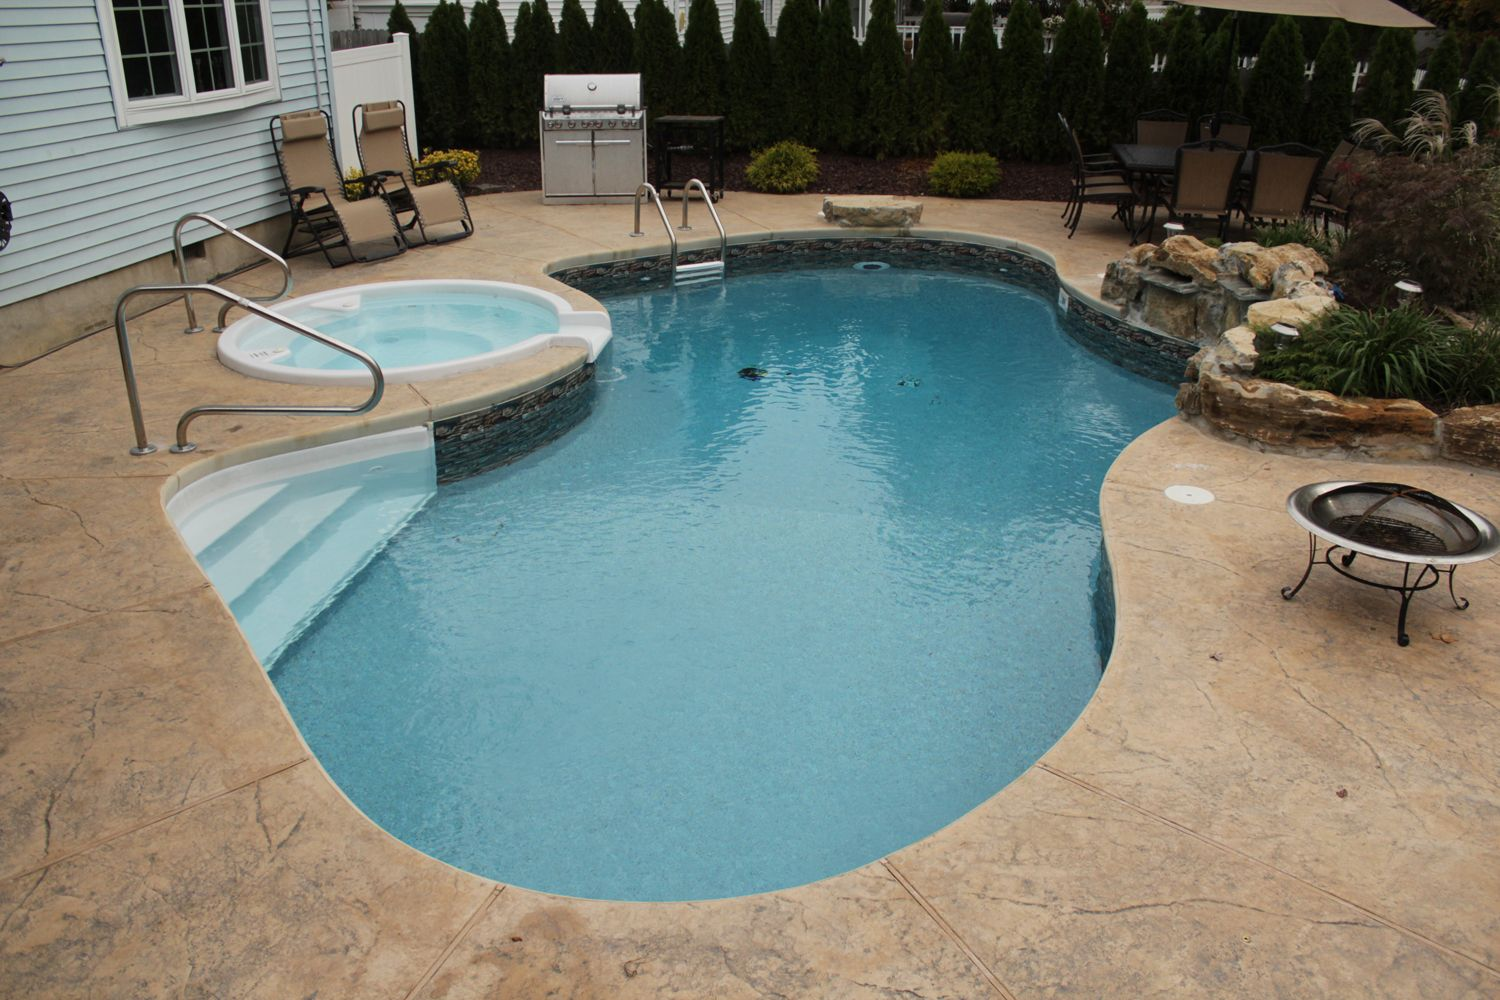 Pool town nj inground swimming pool with spa for Vinyl swimming pool